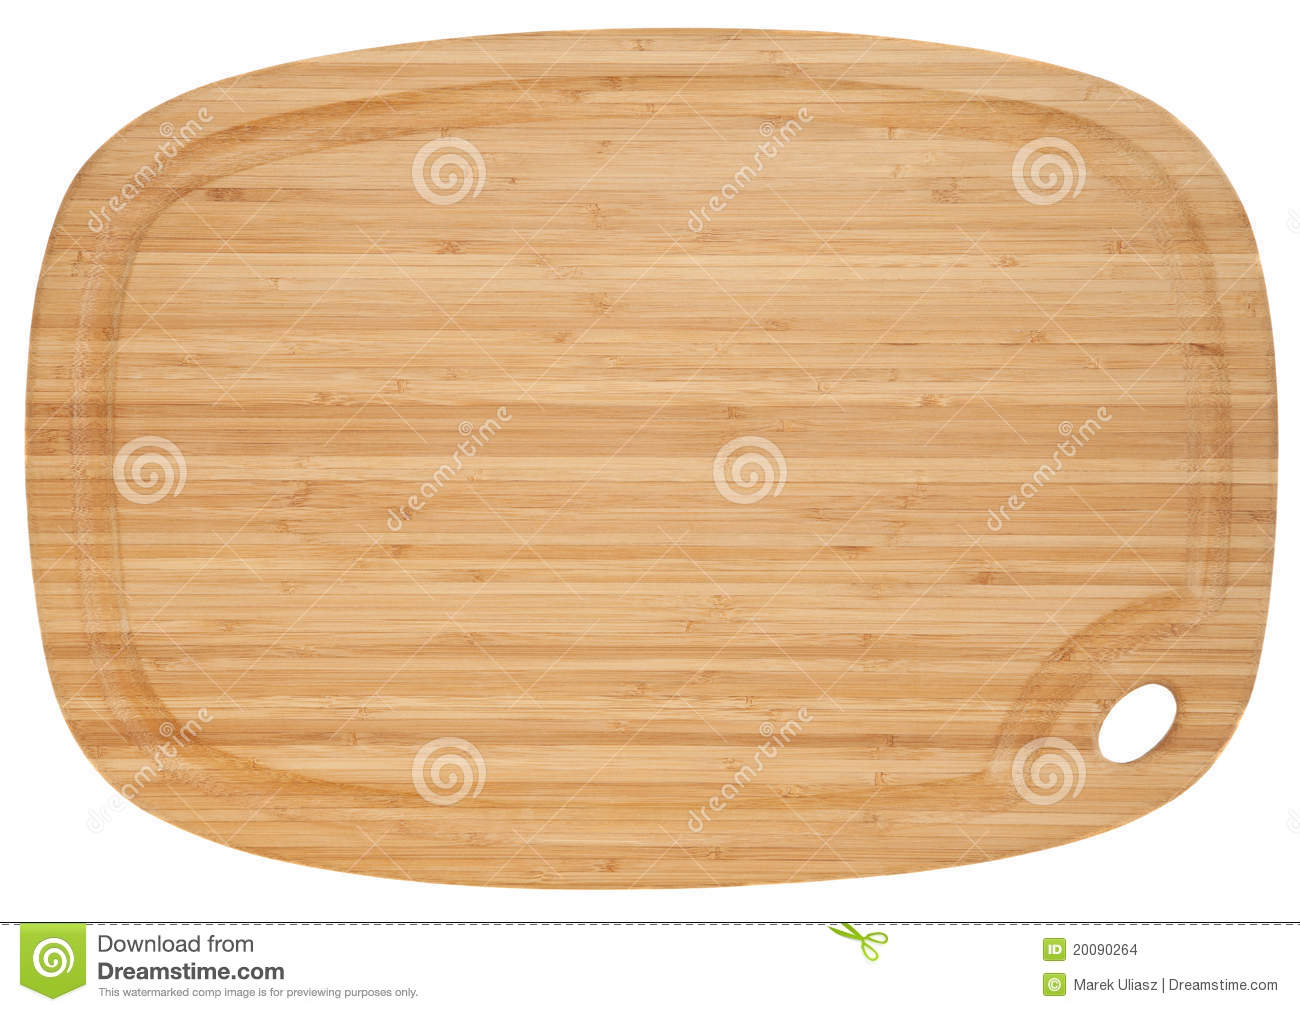 Unusual Cutting Boards Unique Cutting Board Plans Details Aji